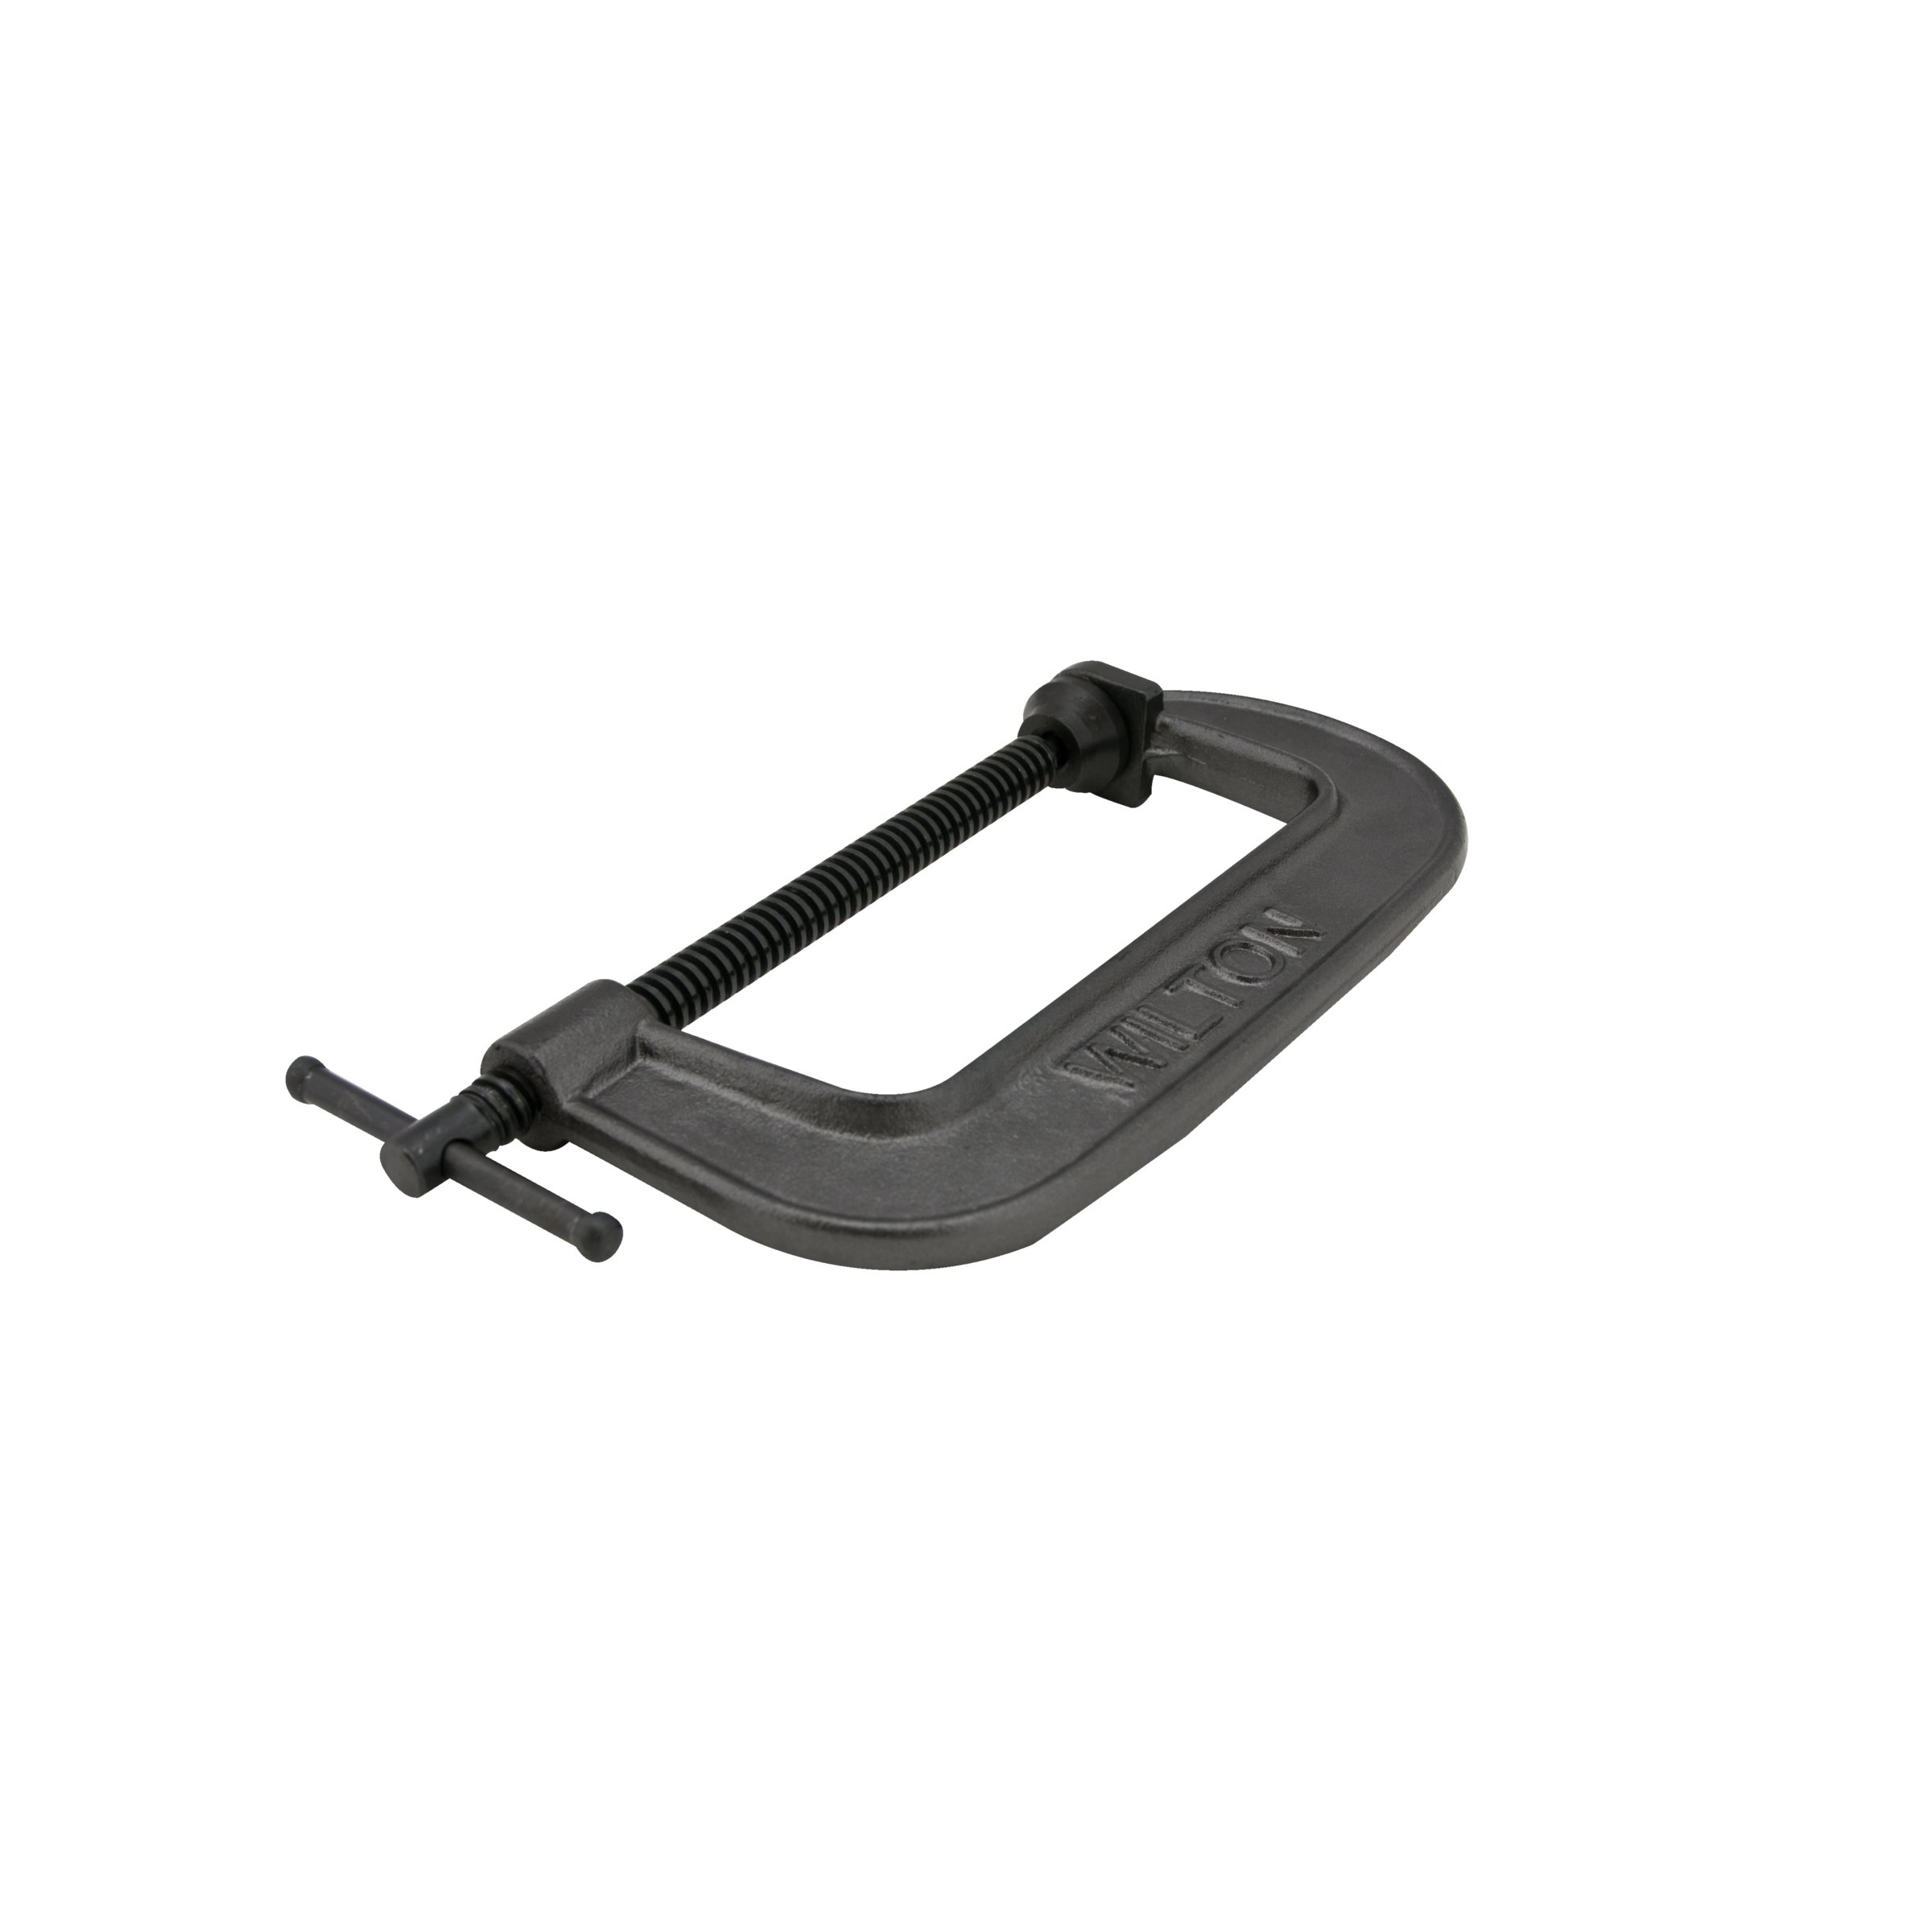 Wilton 22006 540A-8, 540A Series C-Clamp, 0-Inch-8-Inch Jaw Opening, 3-1/4-Inch Throat Depth